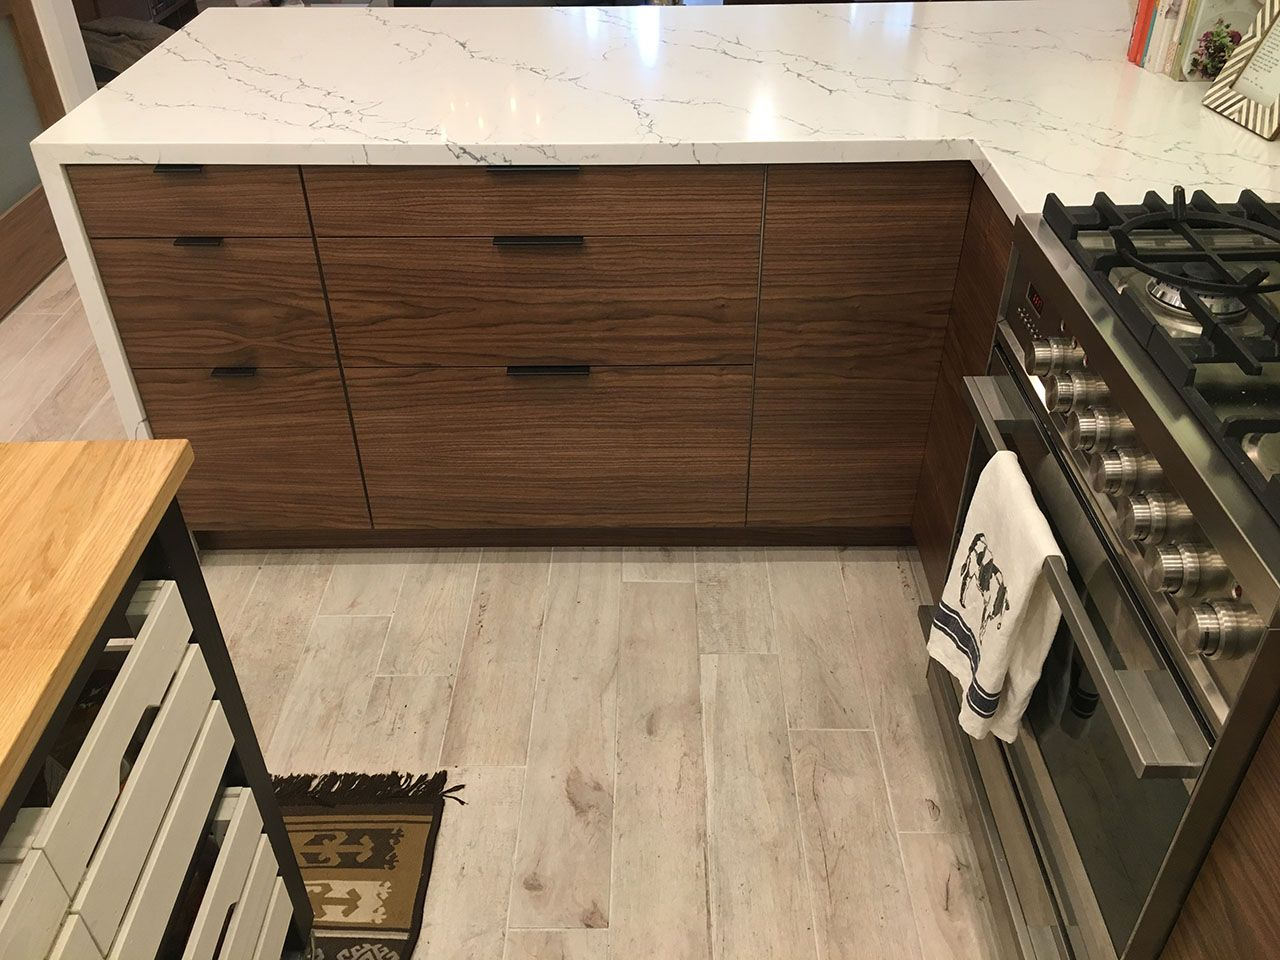 Mid Century Modern Kitchen Remodel Walnut Doors From Semihandmade Give This Ikea Kitchen A Mid